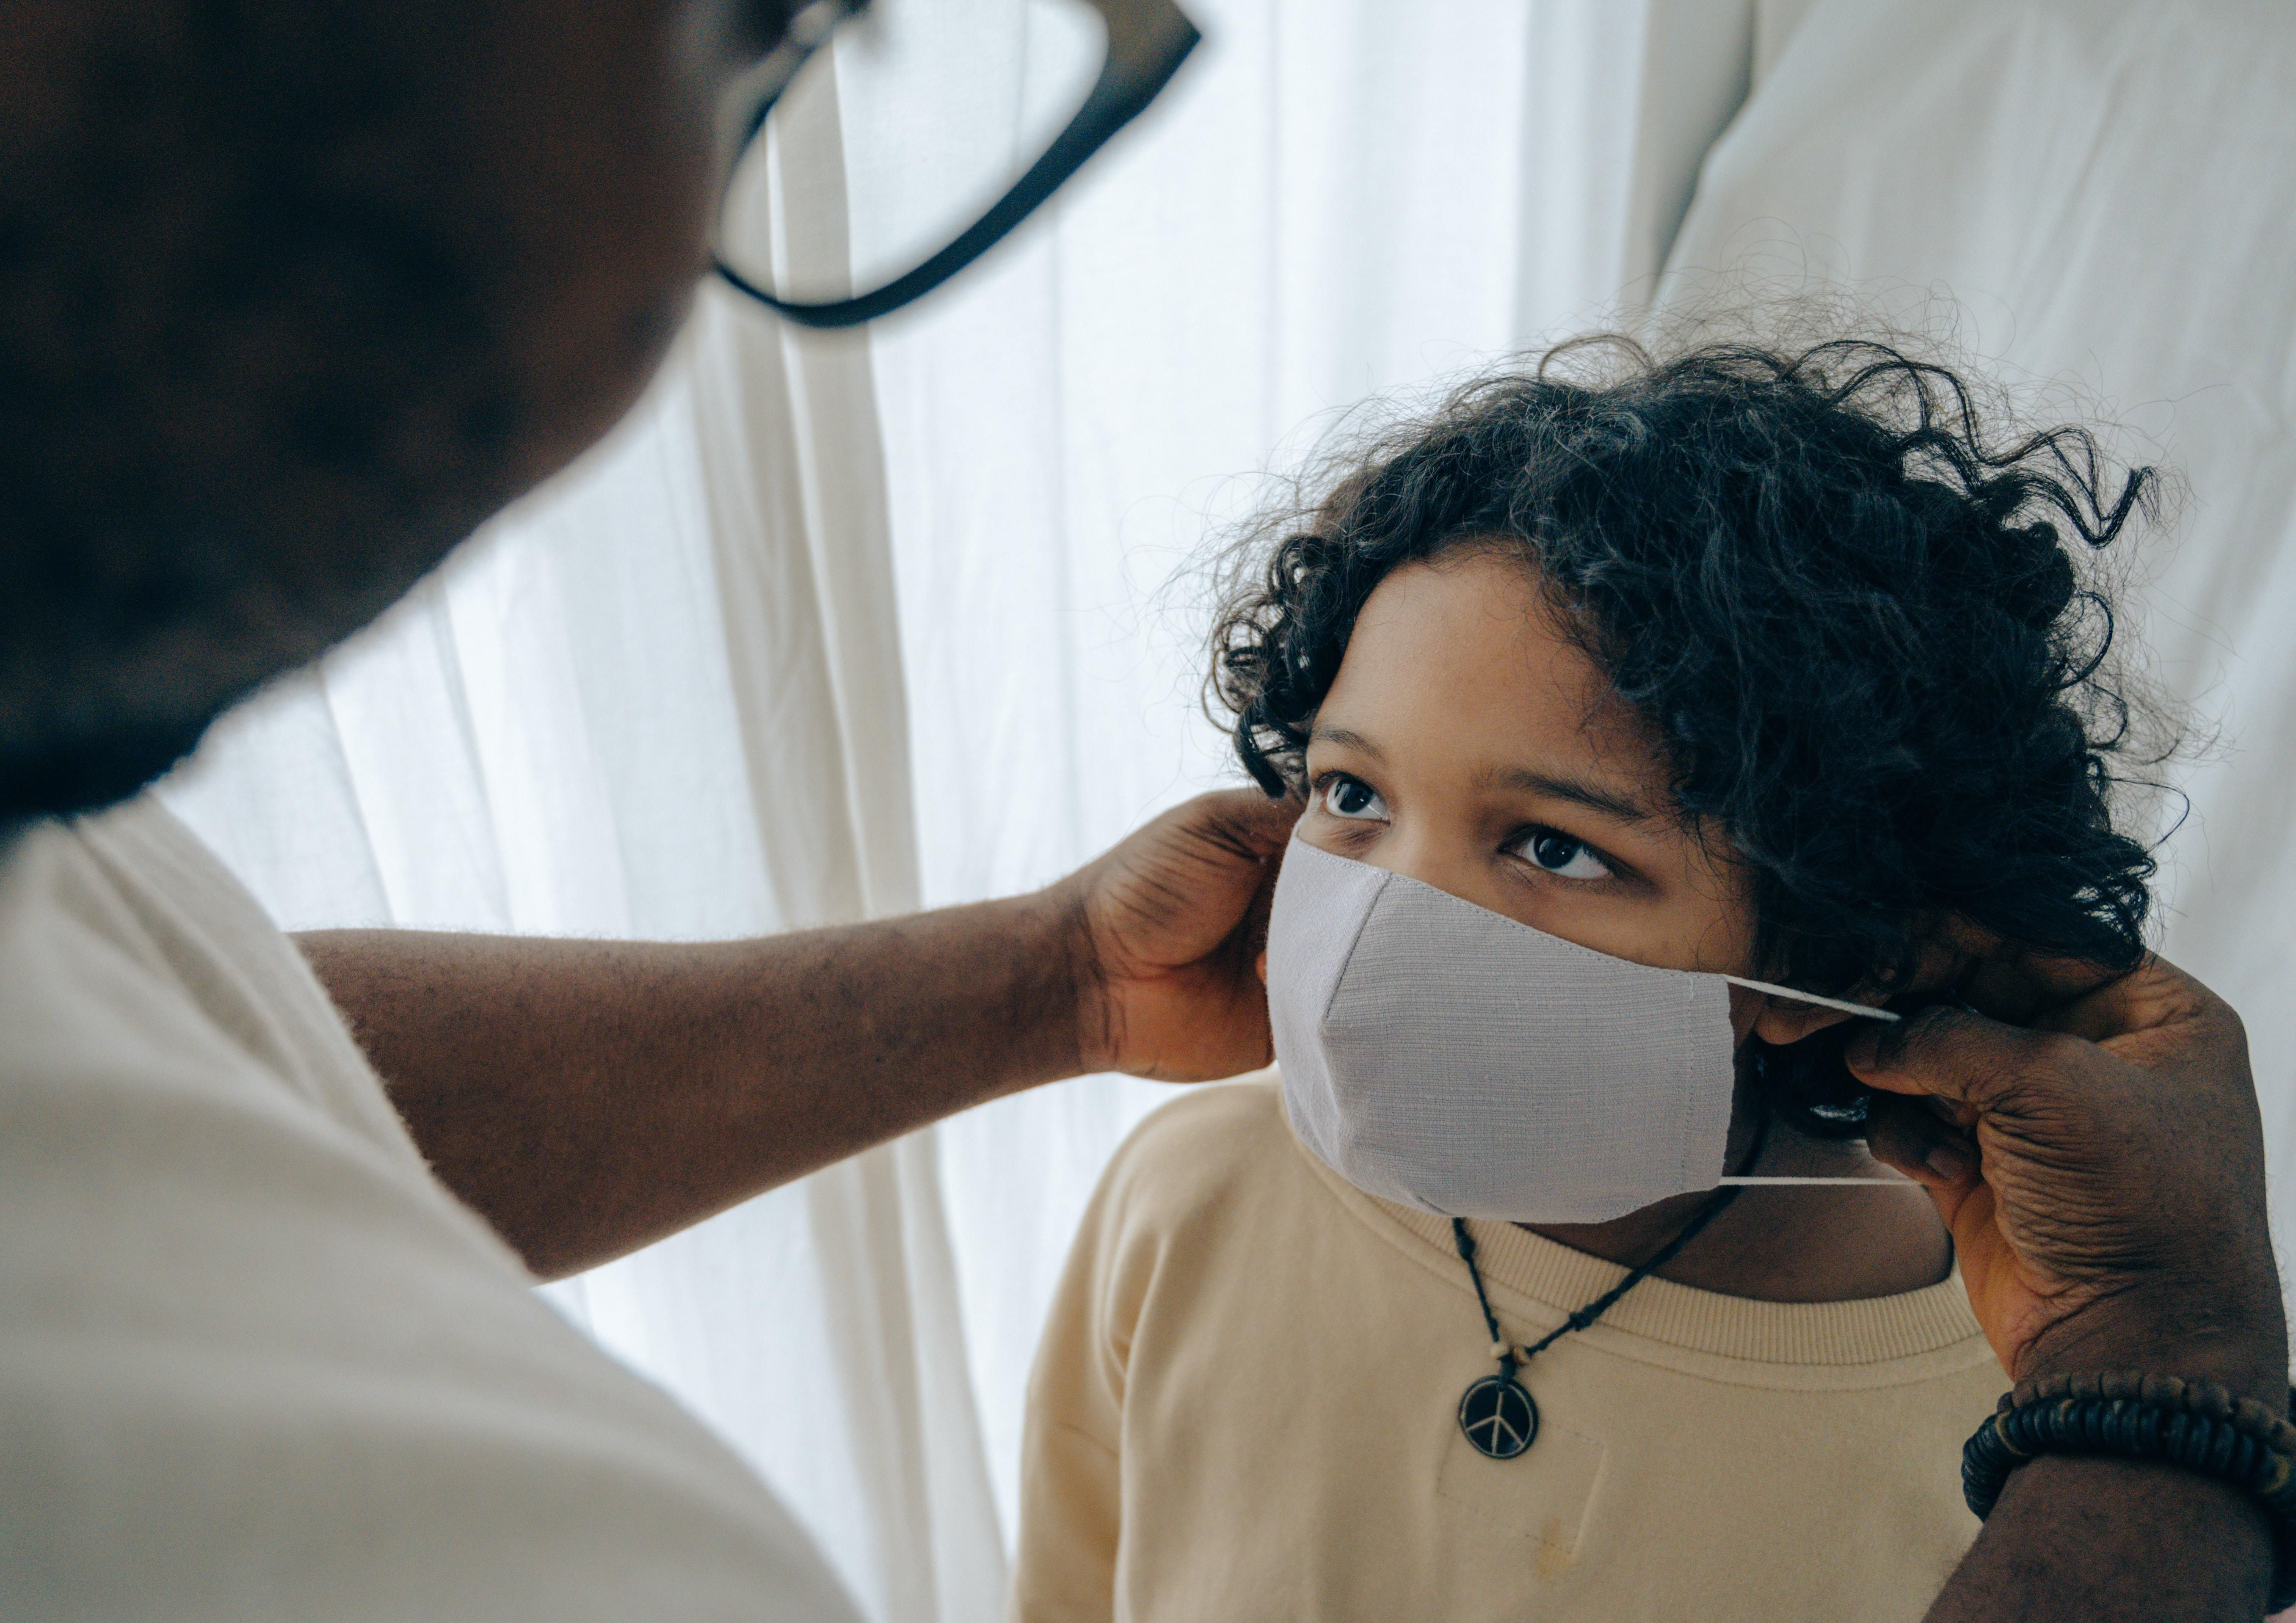 Recent Report Highlights the Negative Effects of the Covid-19 Pandemic on Children